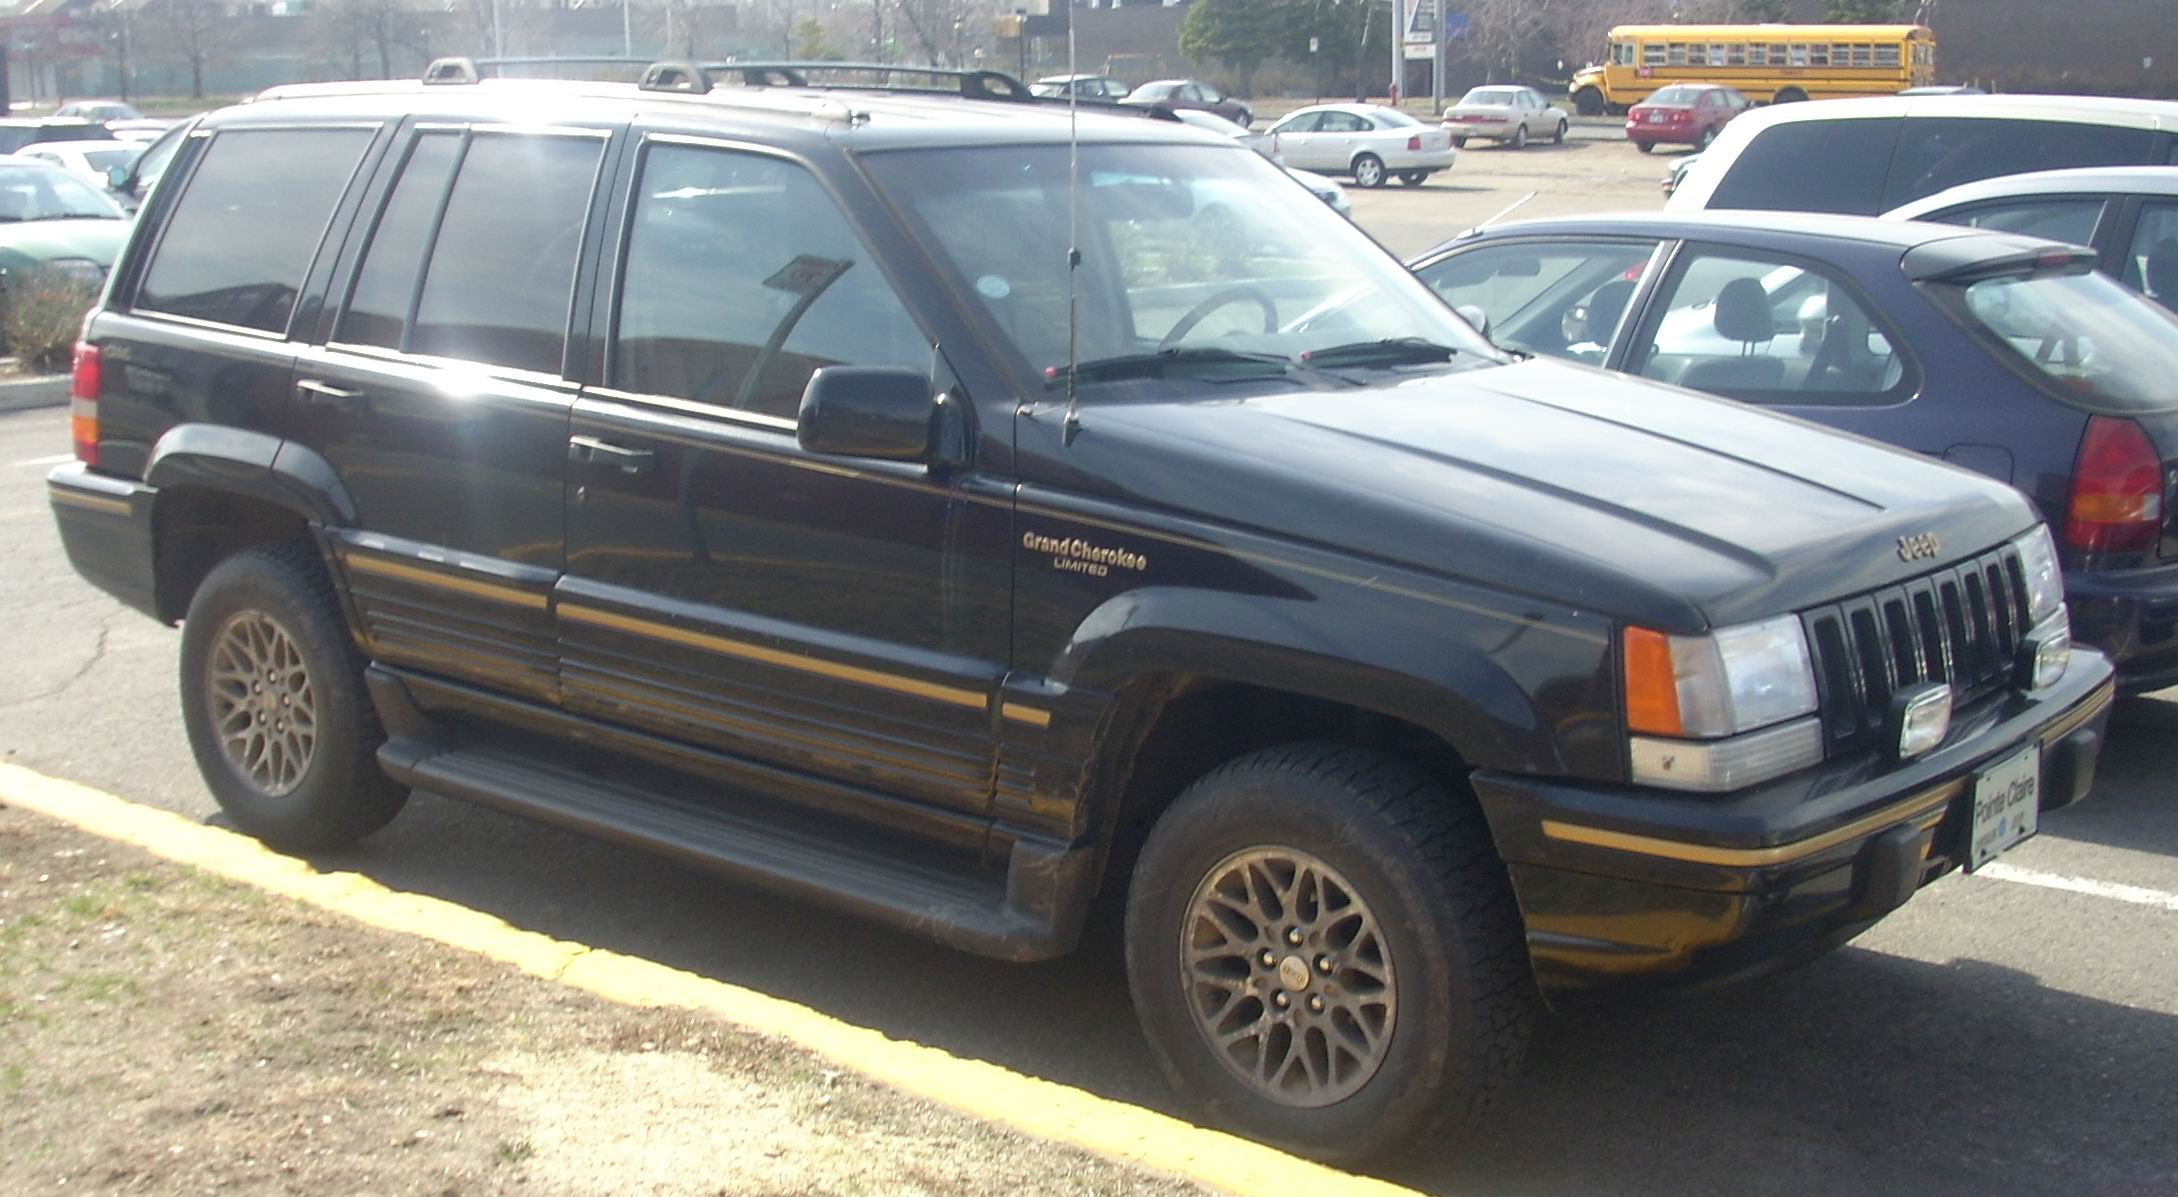 File:1993 95 Jeep Grand Cherokee Limited.JPG